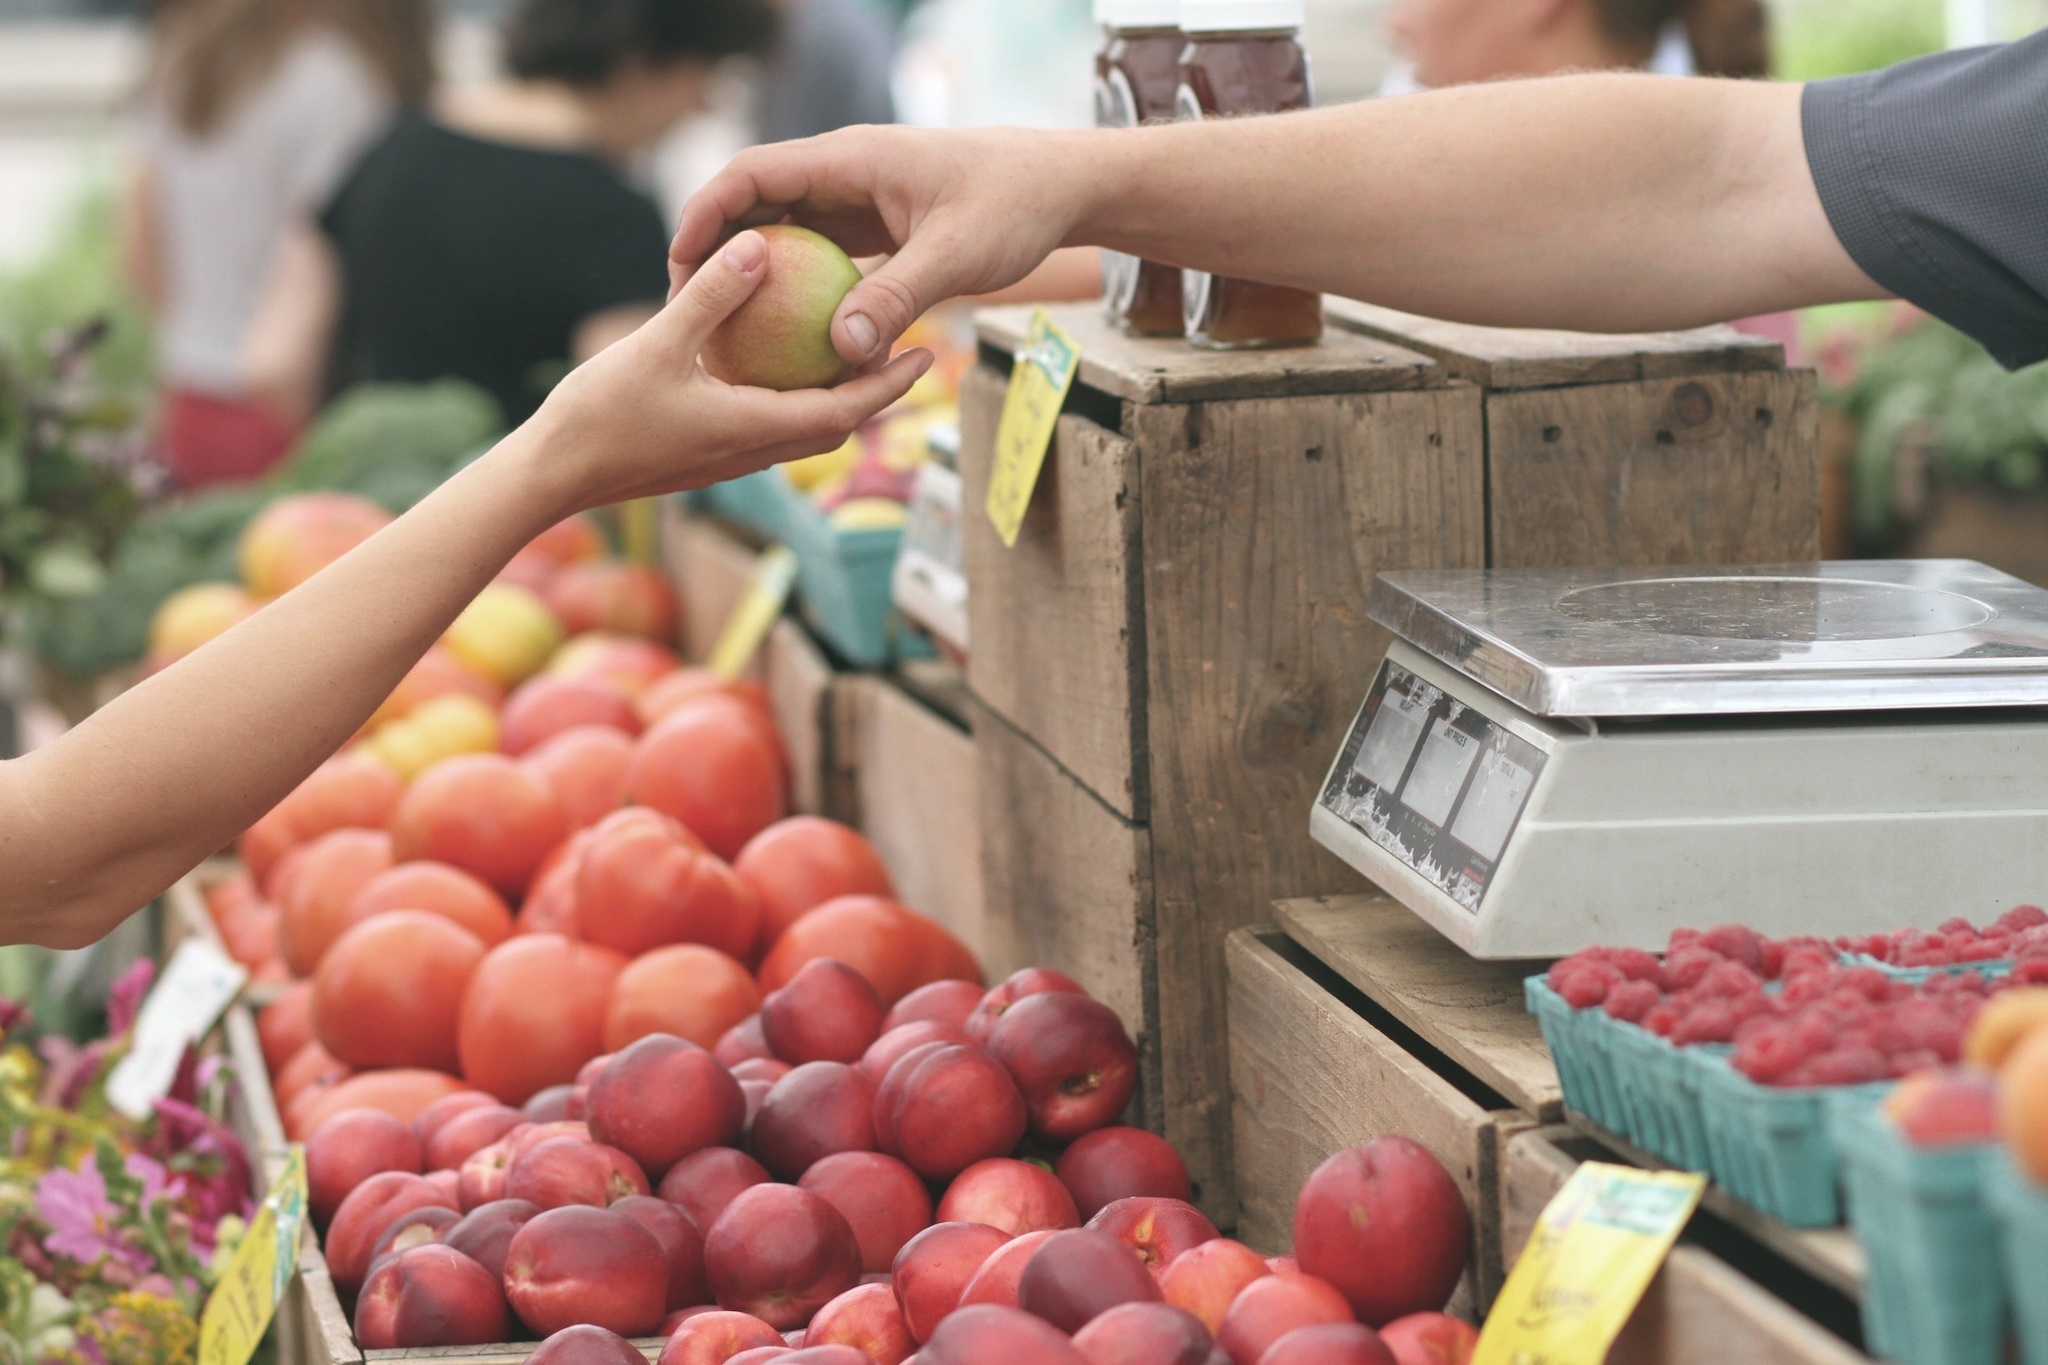 The Chestnut Hill Farmers Market is open on Saturdays.